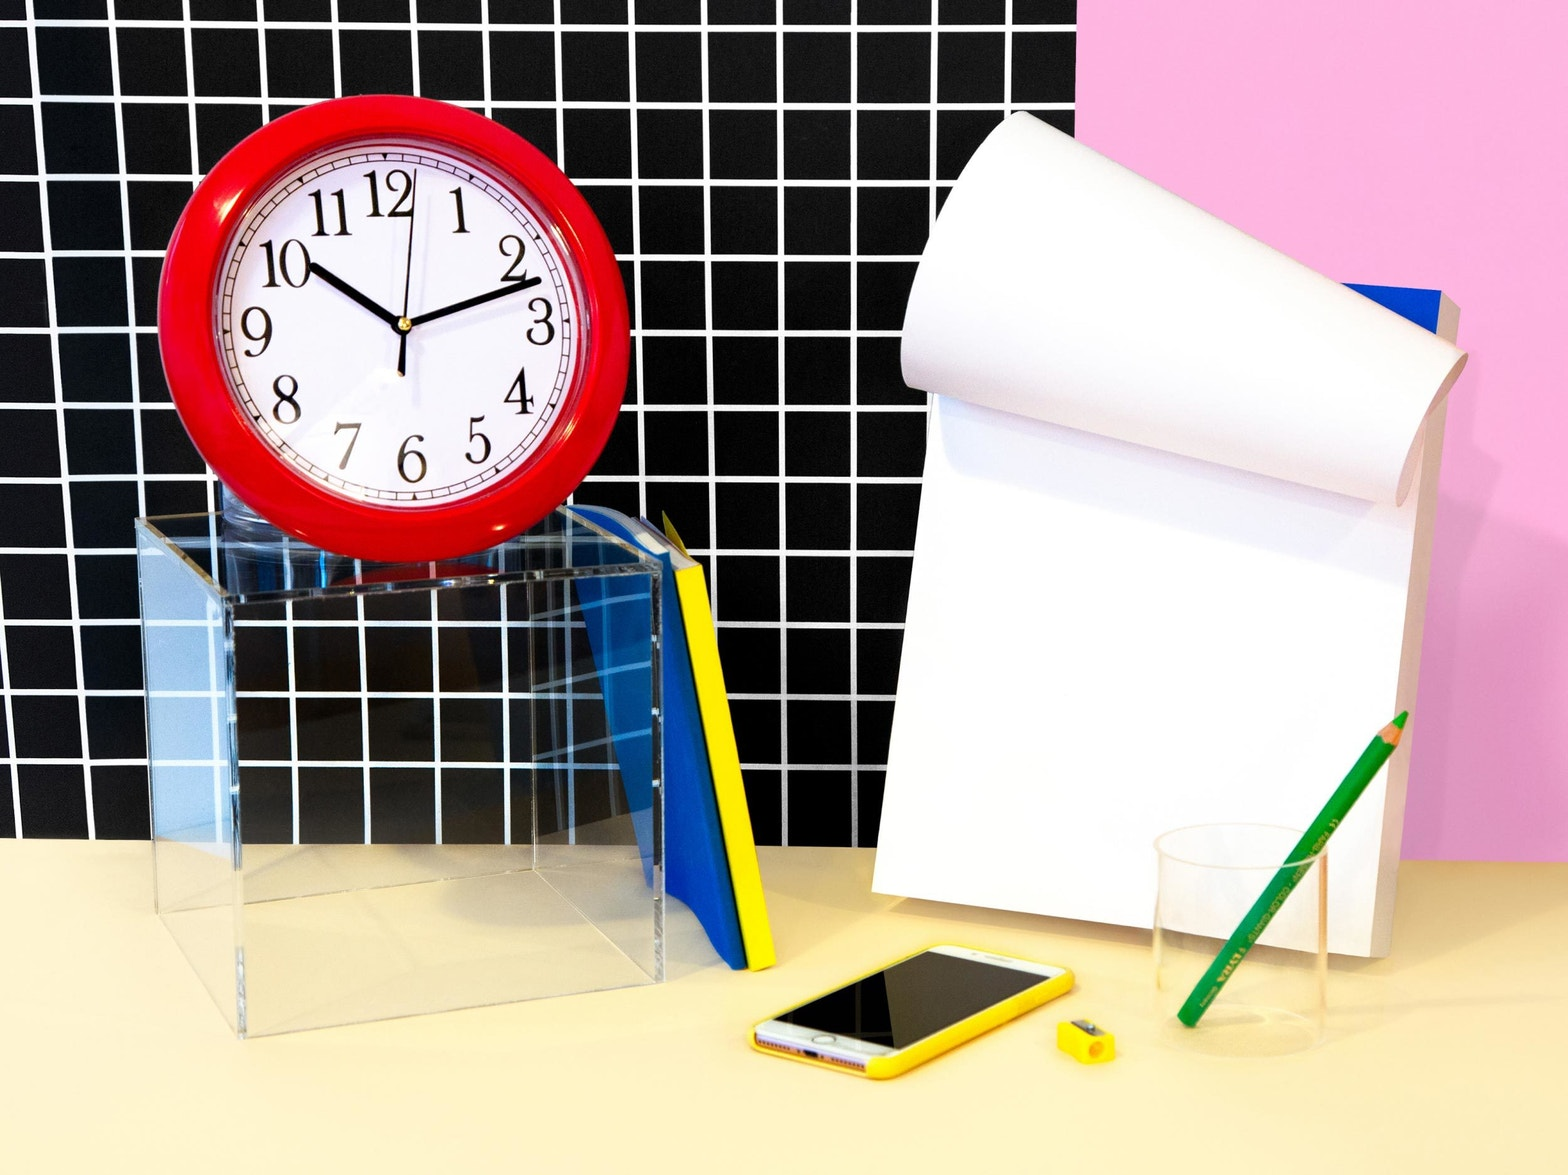 A colourful collection of stationery, a clock, and a smart phone